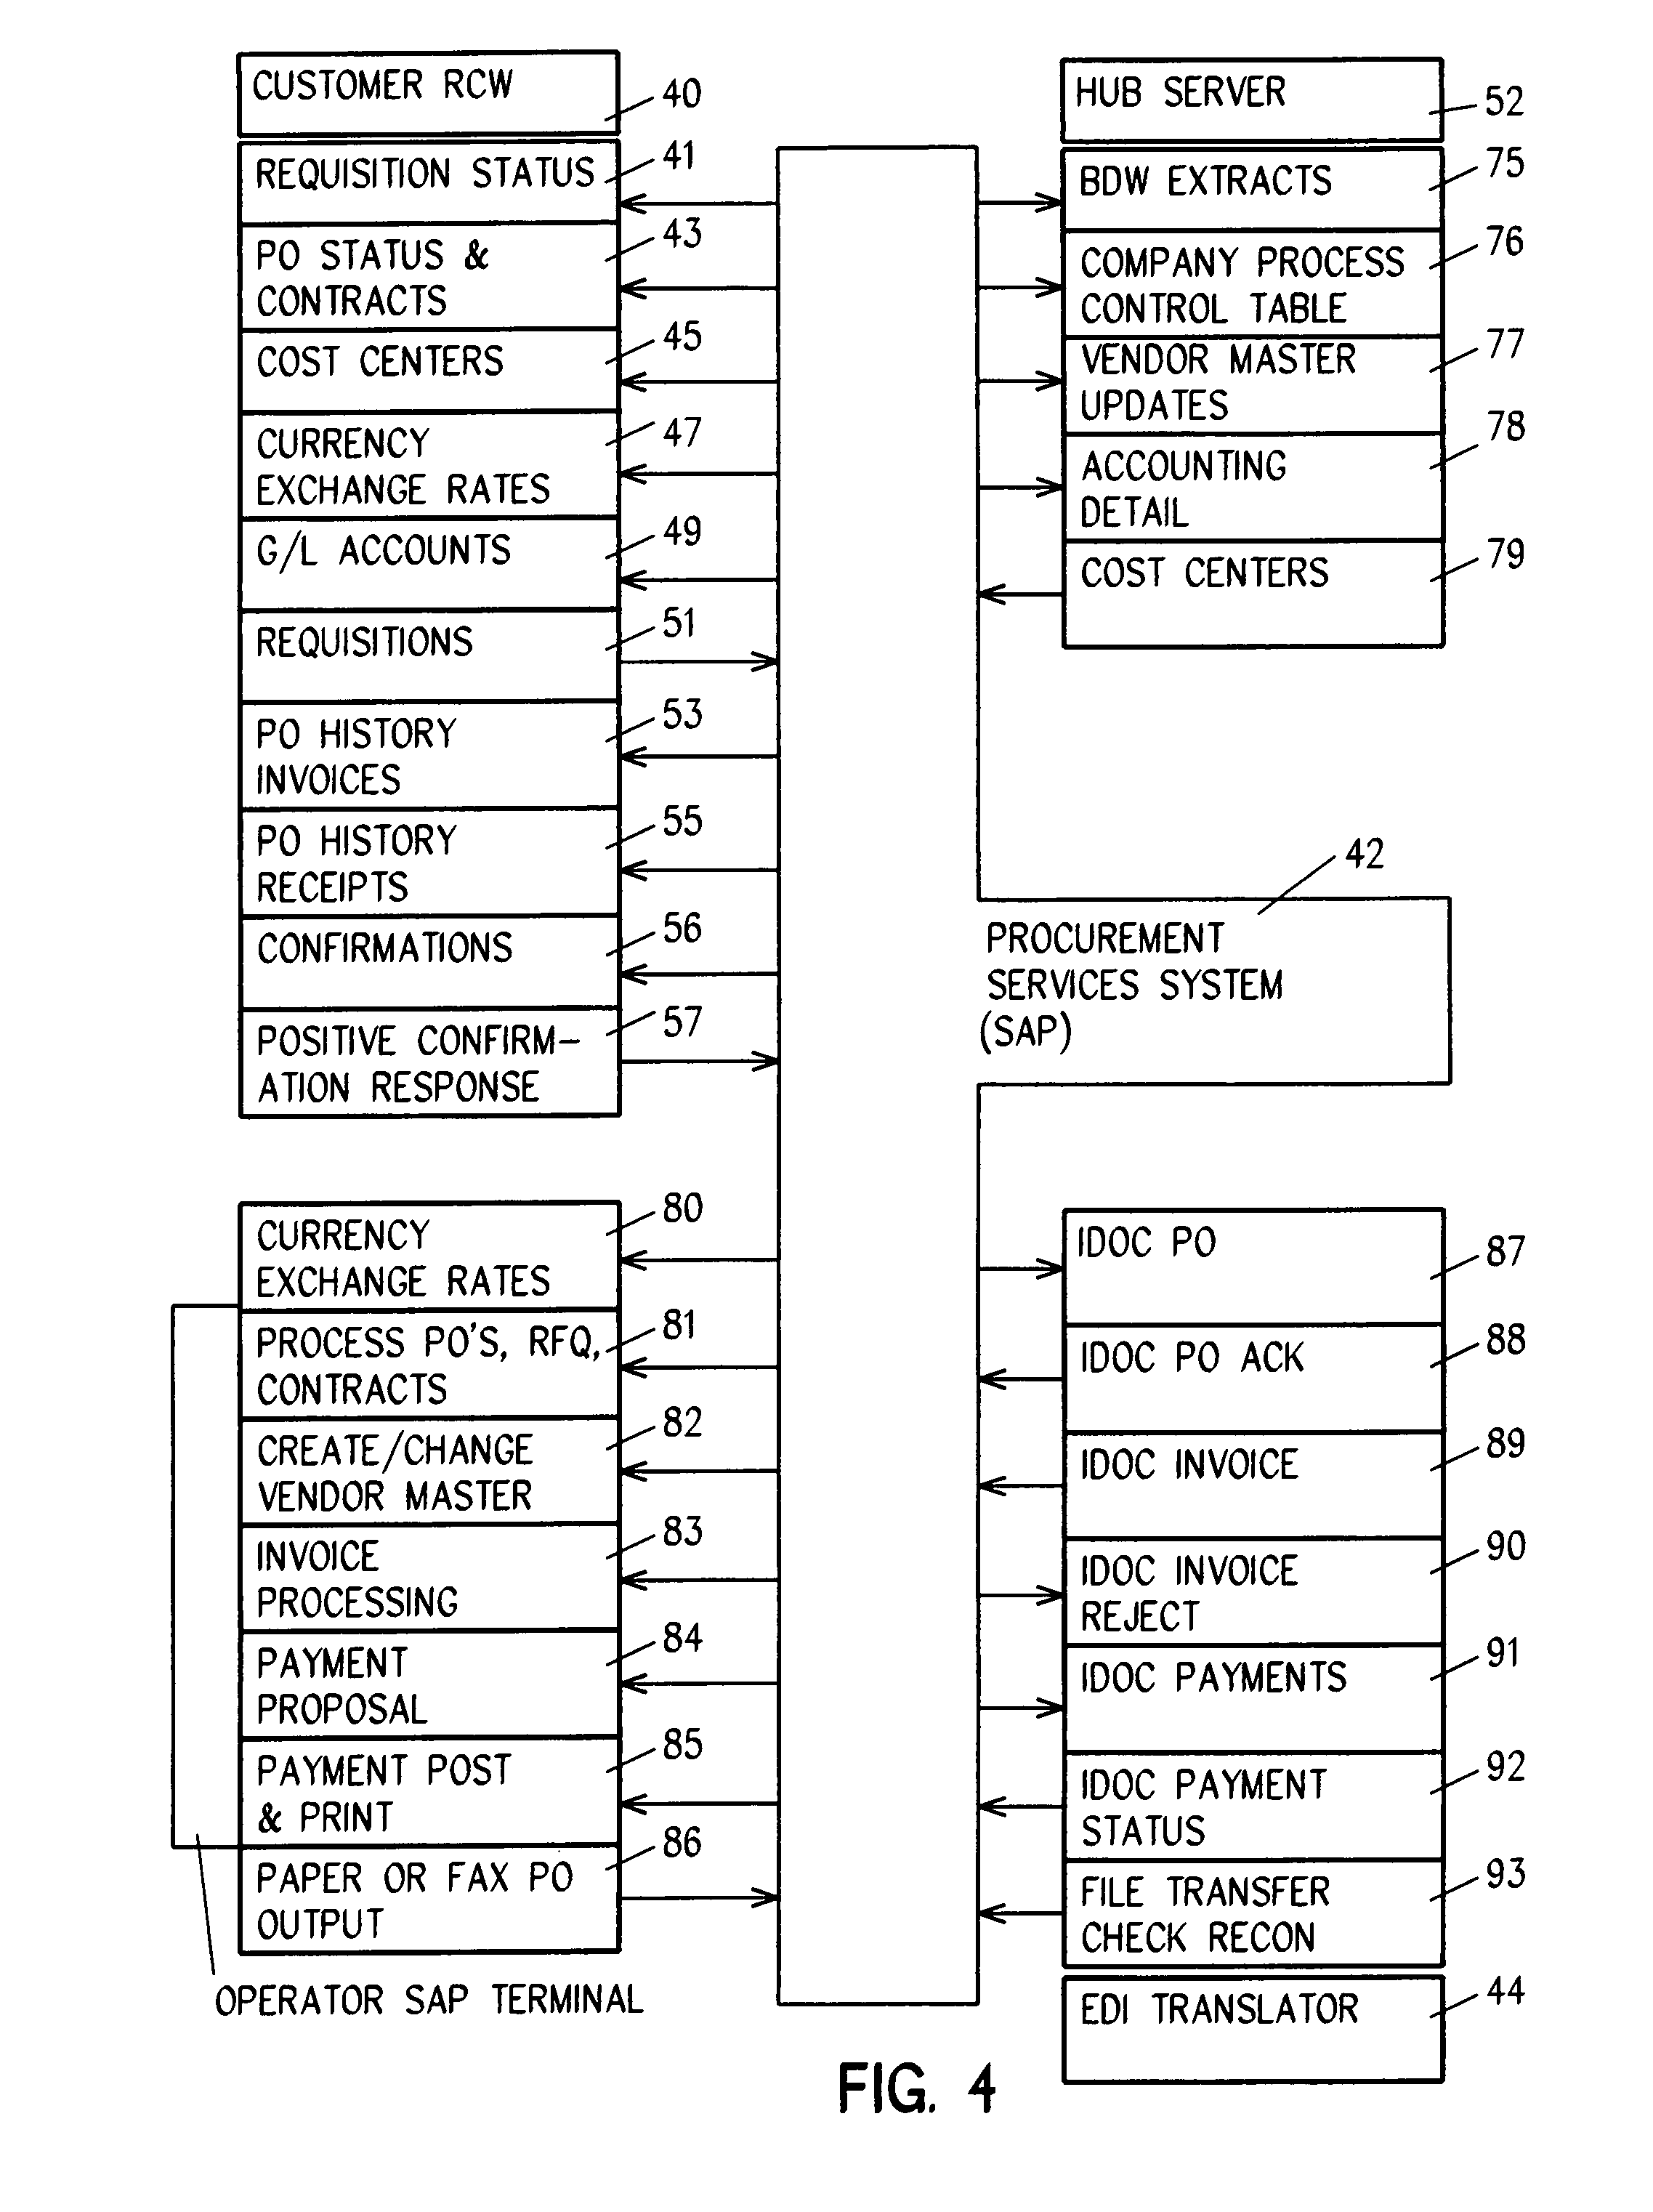 Receipt Of Goods Template Pdf Patent Us  System And Method For Invoice Imaging  Vehicle Sales Receipt Template Word with Invoice Meaning Word Patent Drawing The Commercial Invoice Word